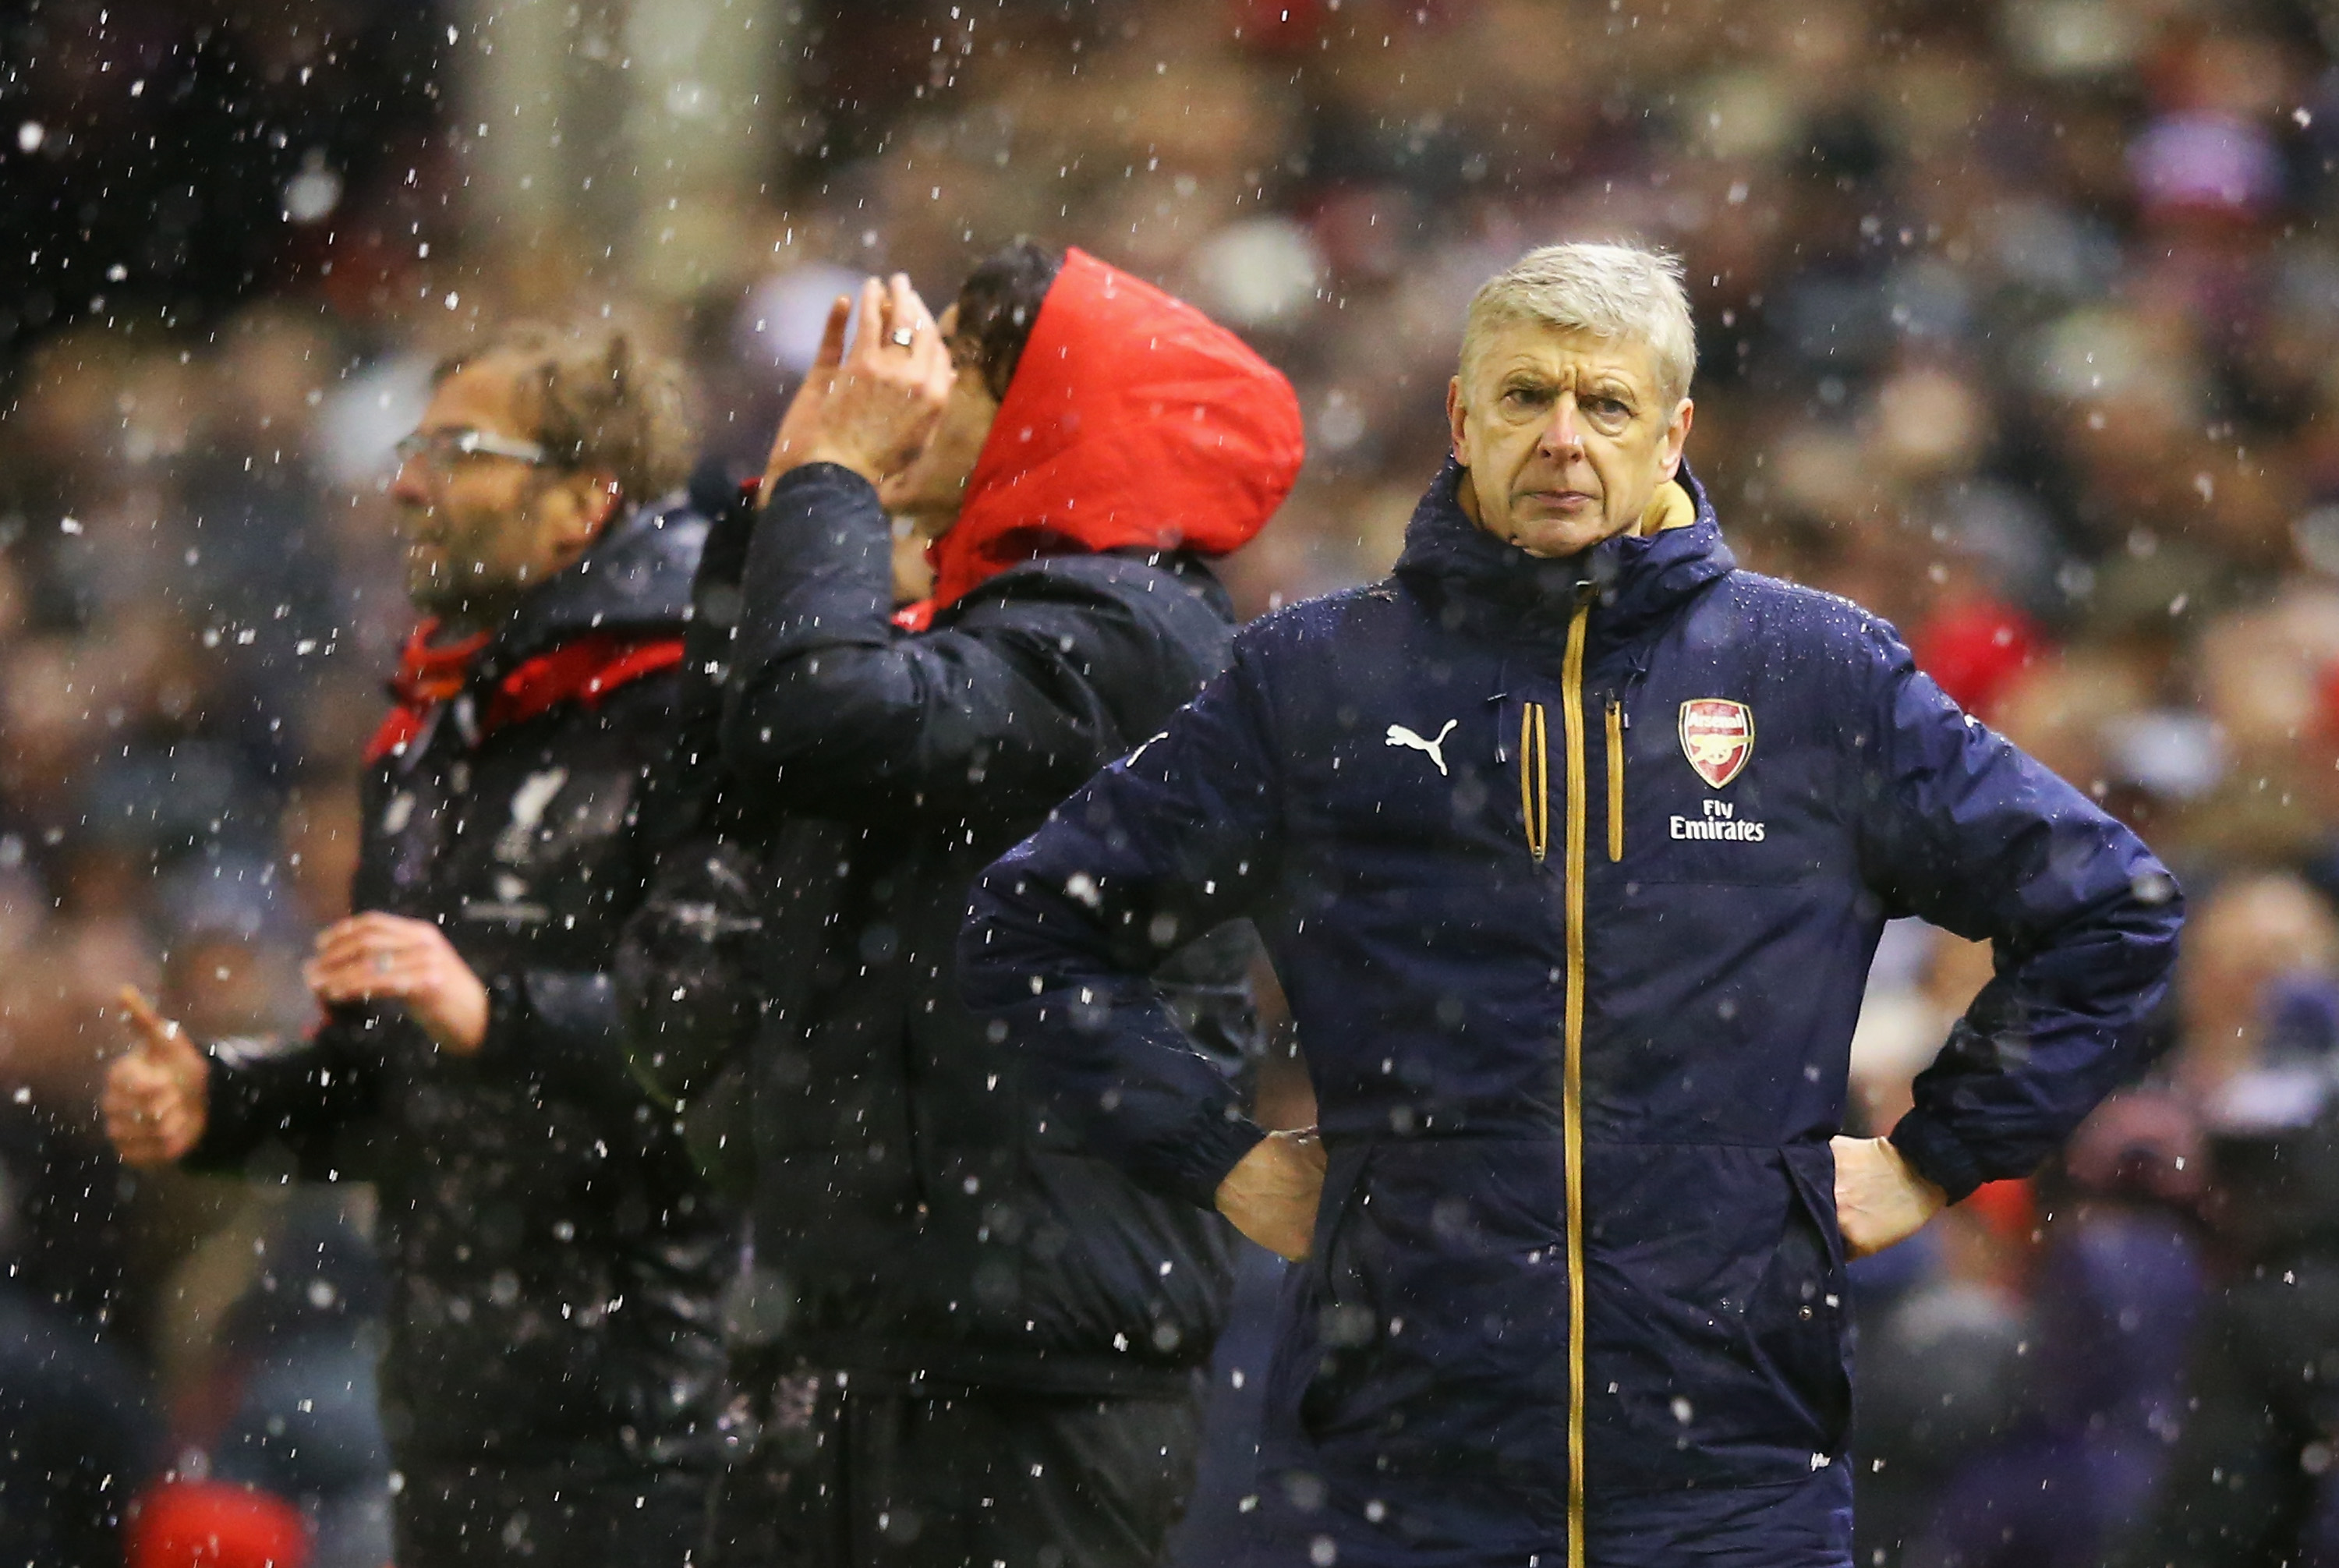 13 januari 2016: Wenger surar efter att Arsenal just blivit besegrat av Liverpool i ligan. (Bild: Alex Livesey/Getty Images)